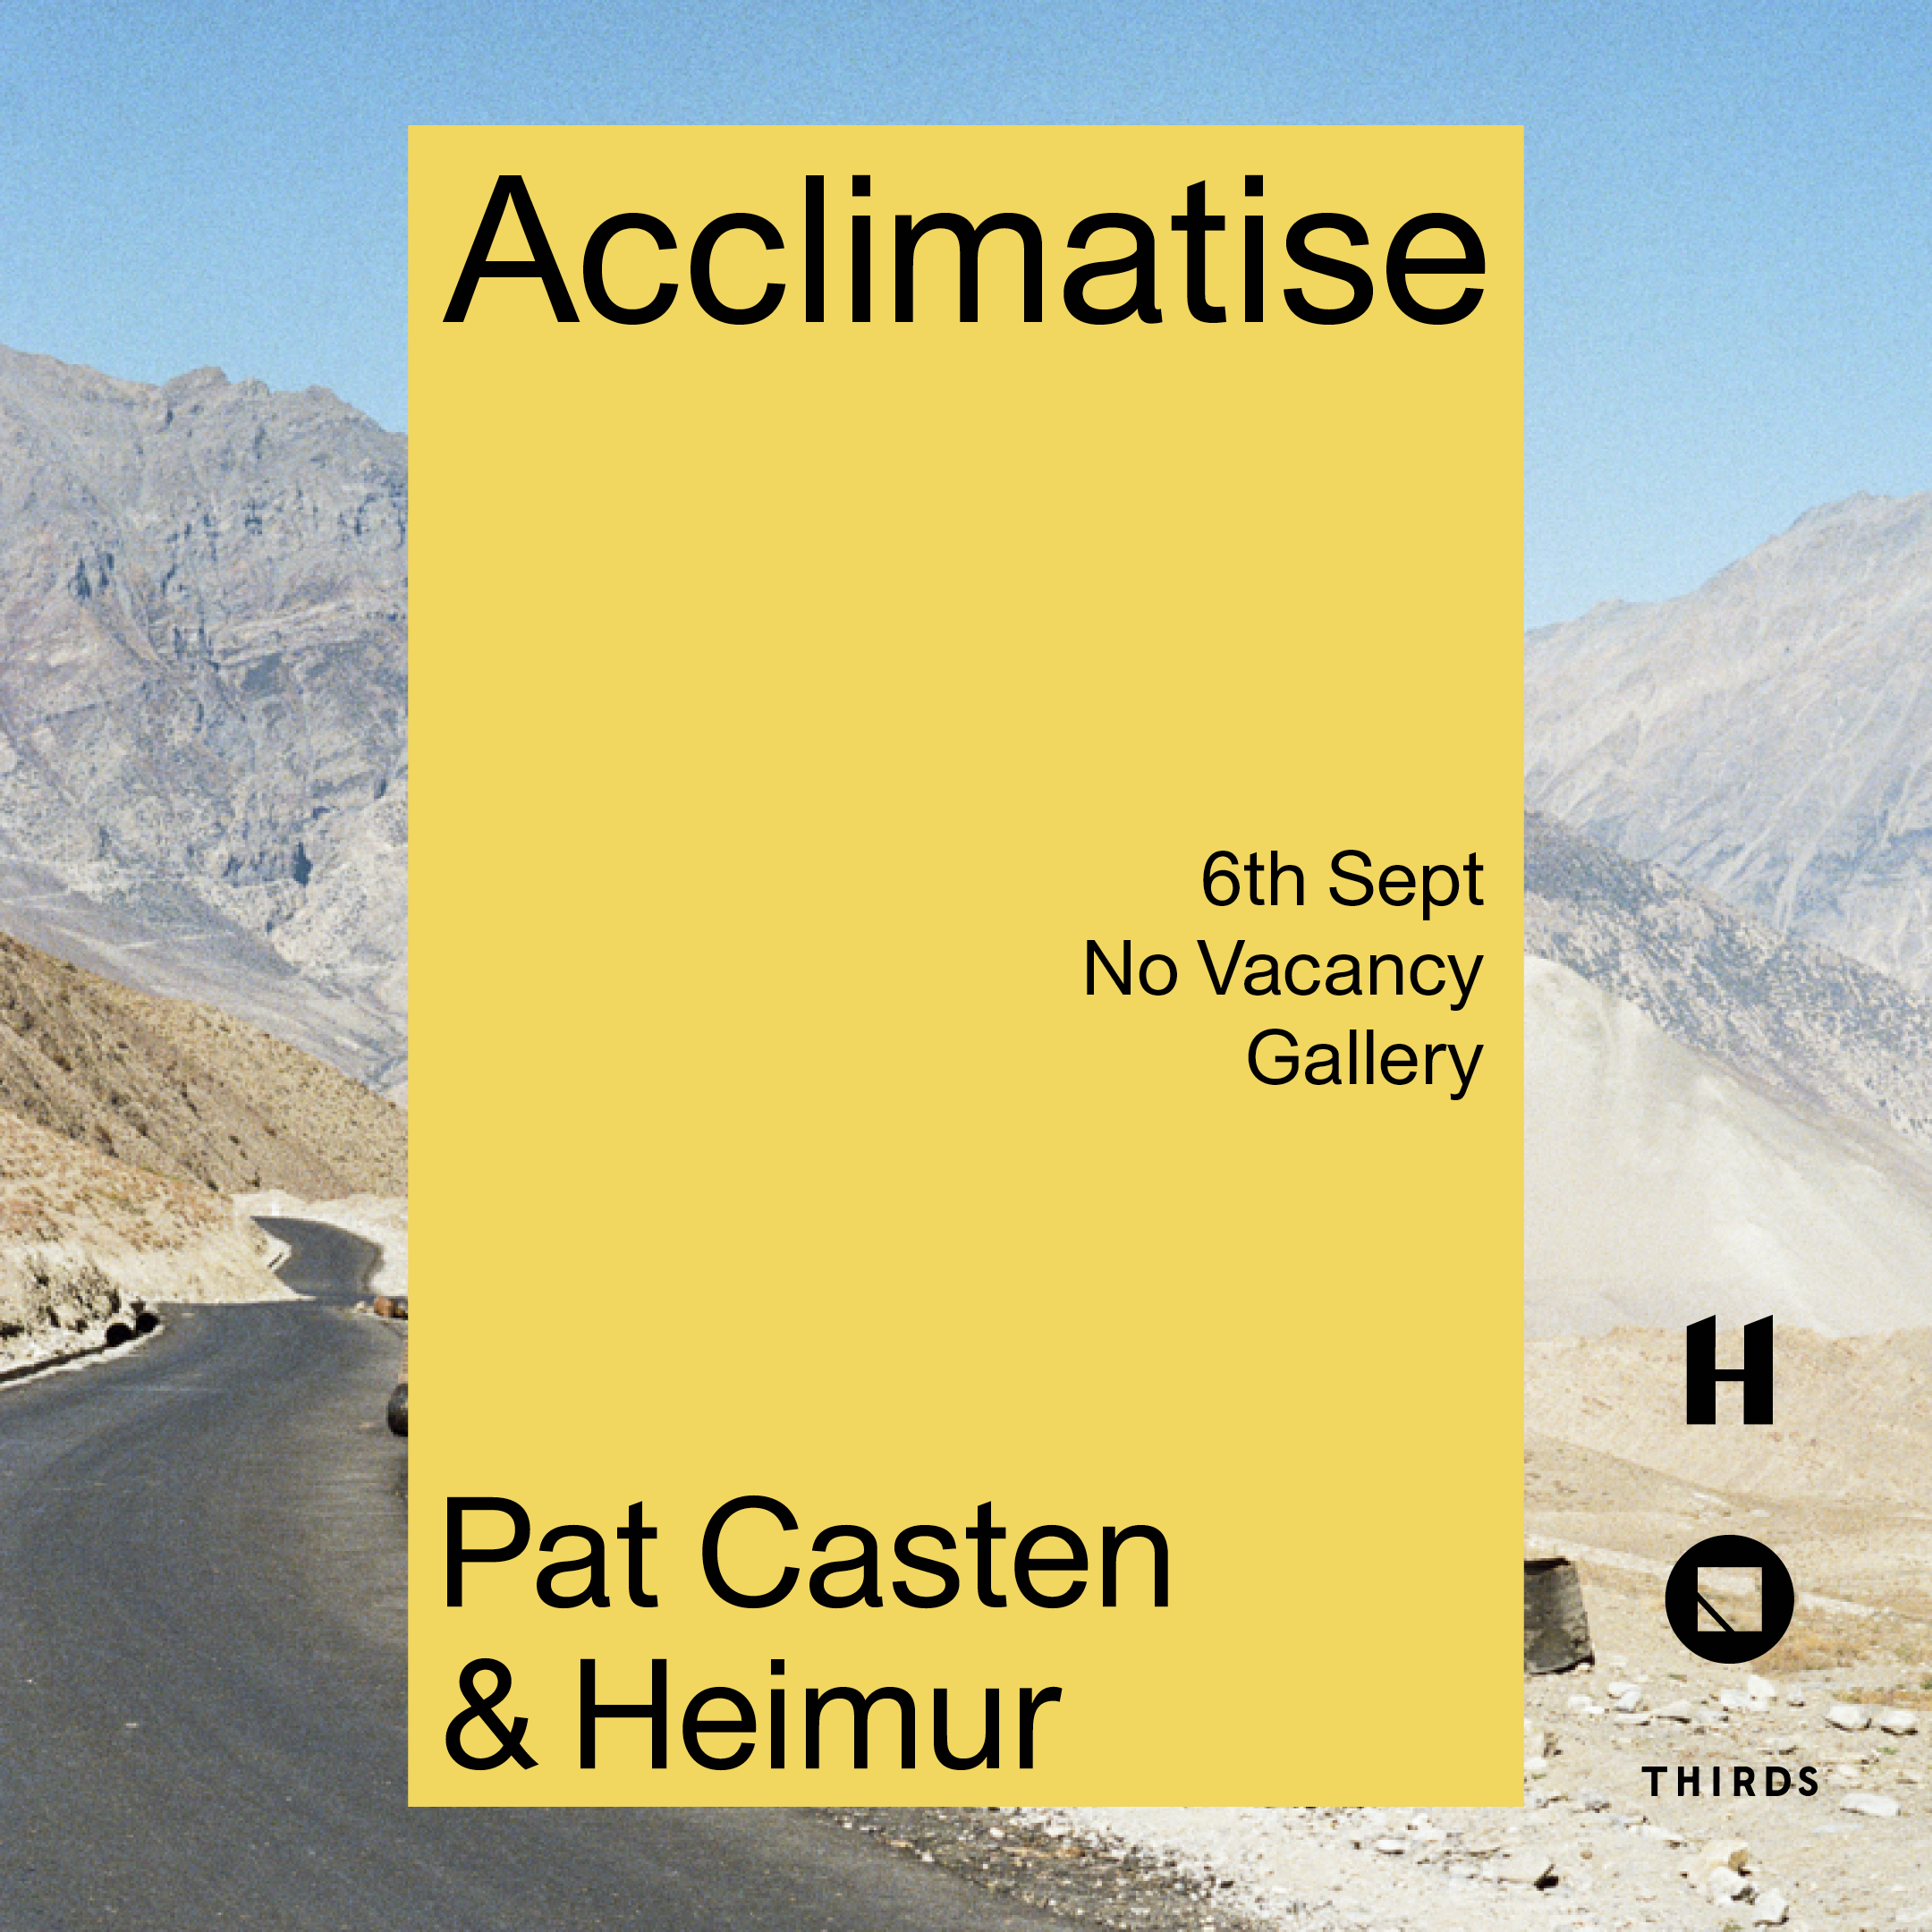 Pat-Casten-Heimur-Meanwhile-in-Melbourne-6.png